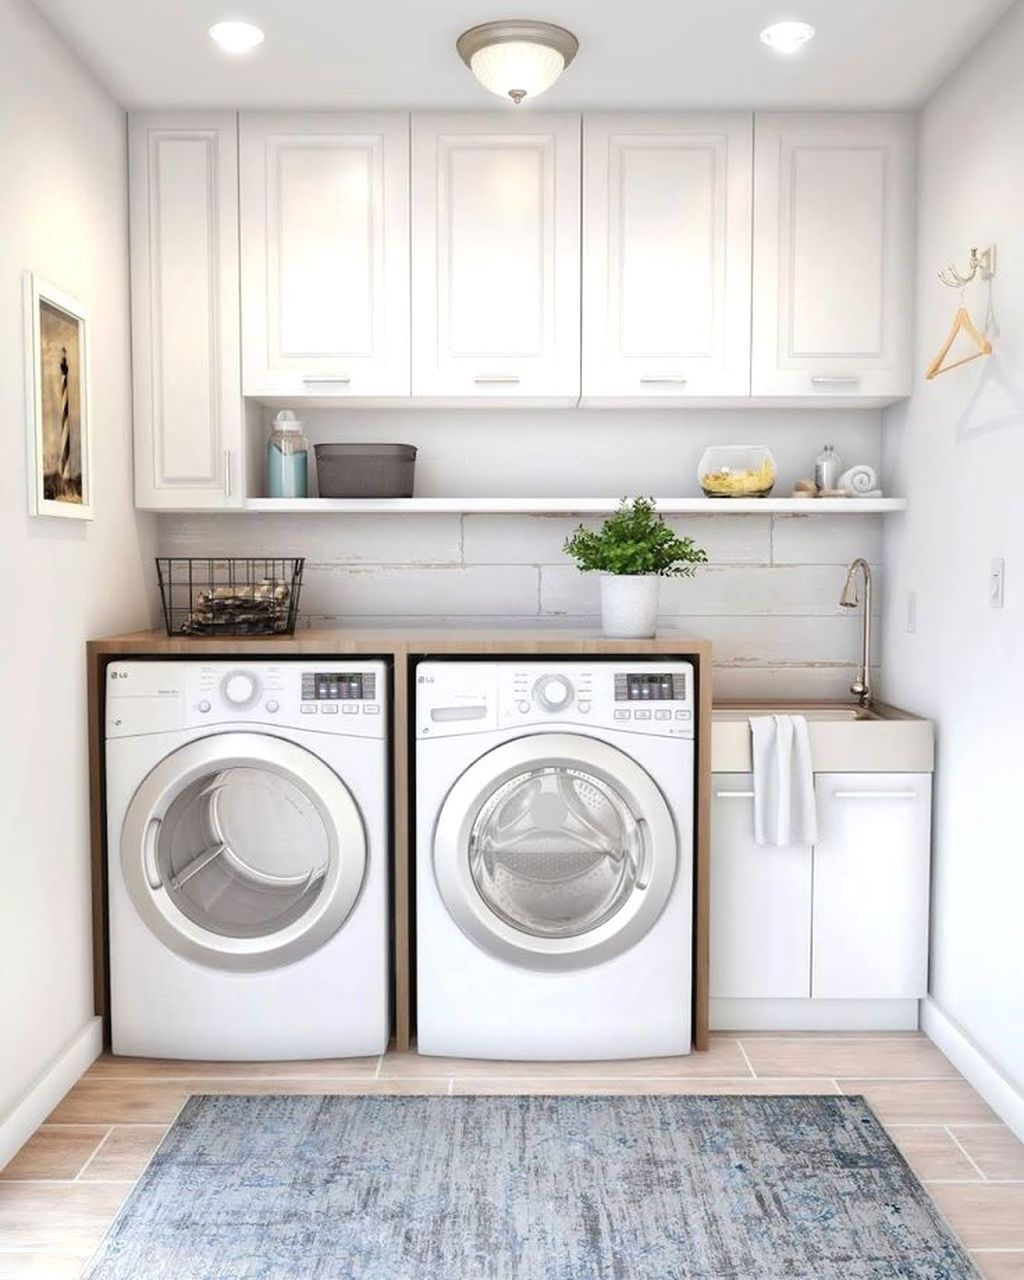 Favored Laundry Room Organization Ideas To Try 17